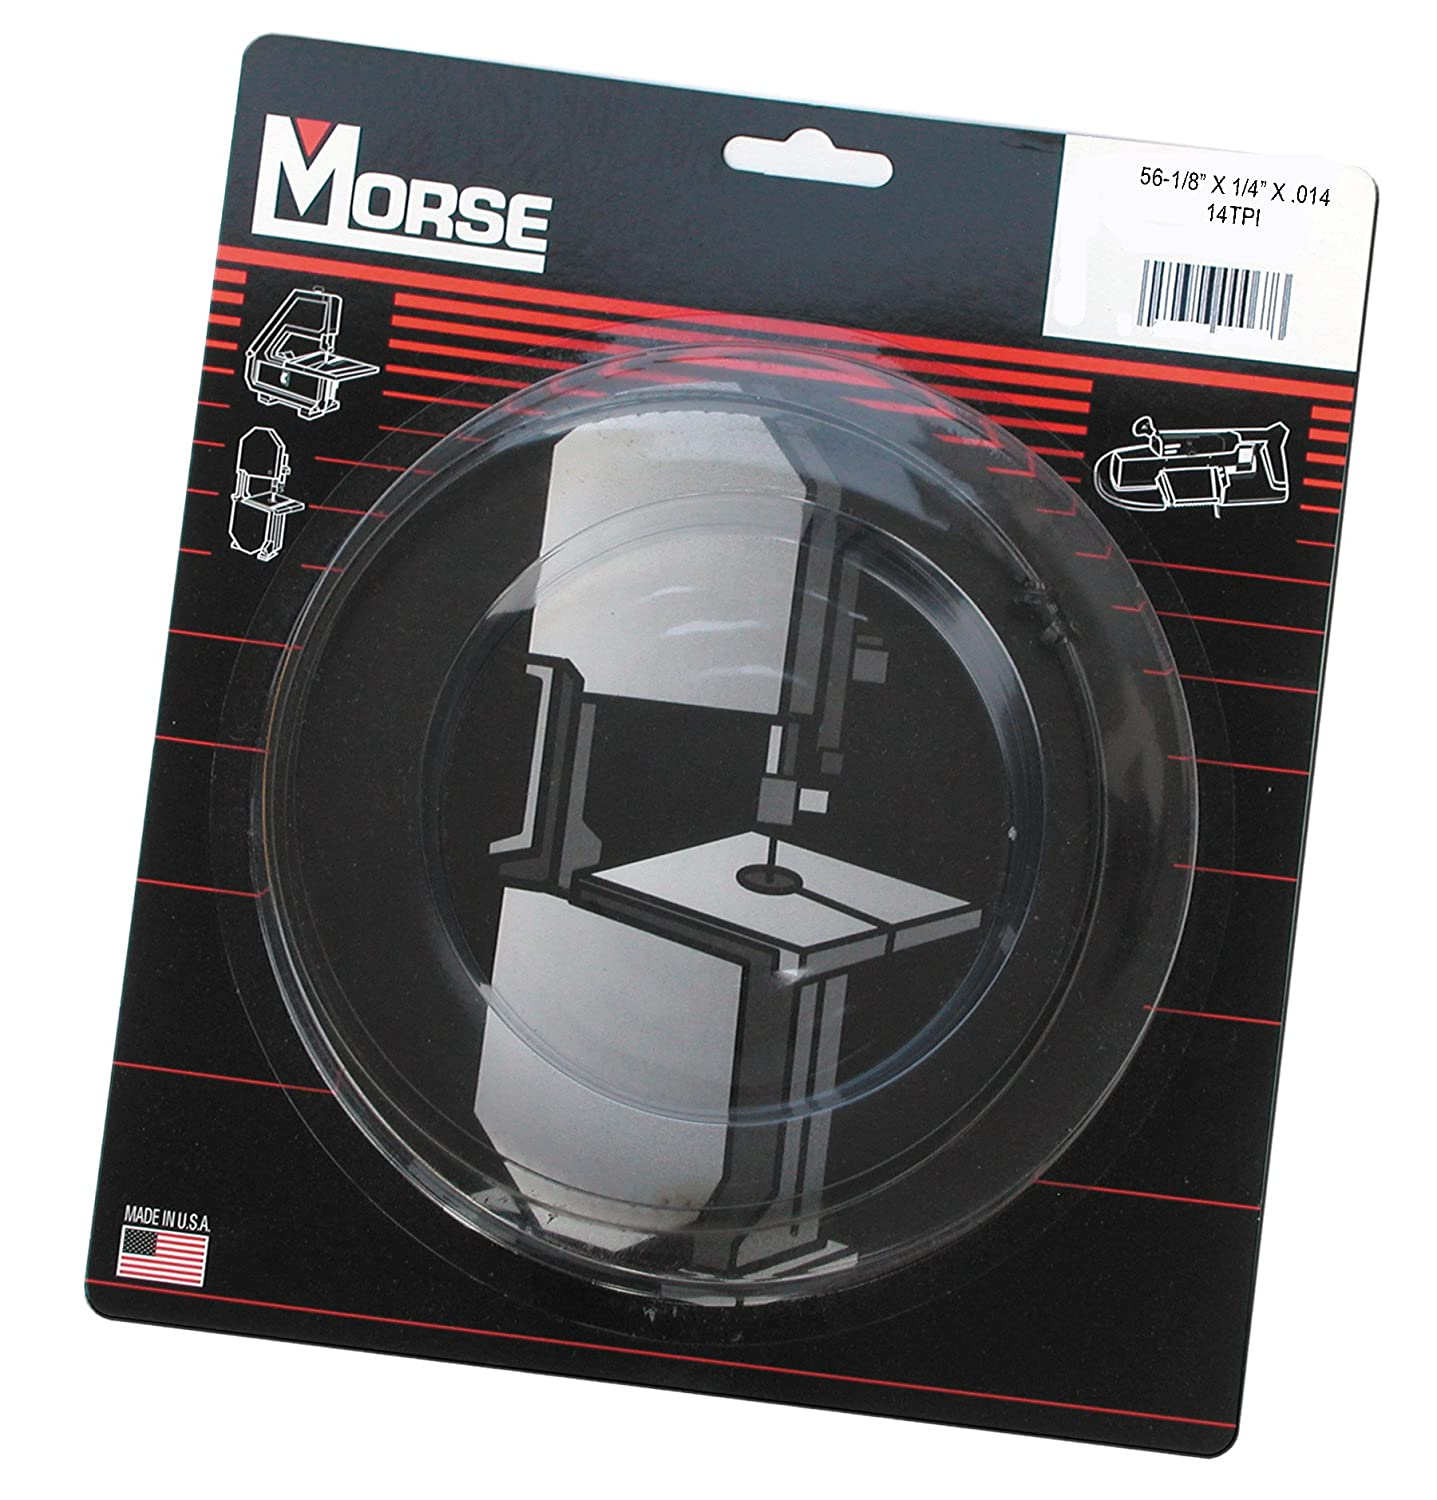 MK Morse ZCBB14 14TPI Woodworking Stationary Bandsaw Blade, 56-1/8-Inch by 1/4-Inch